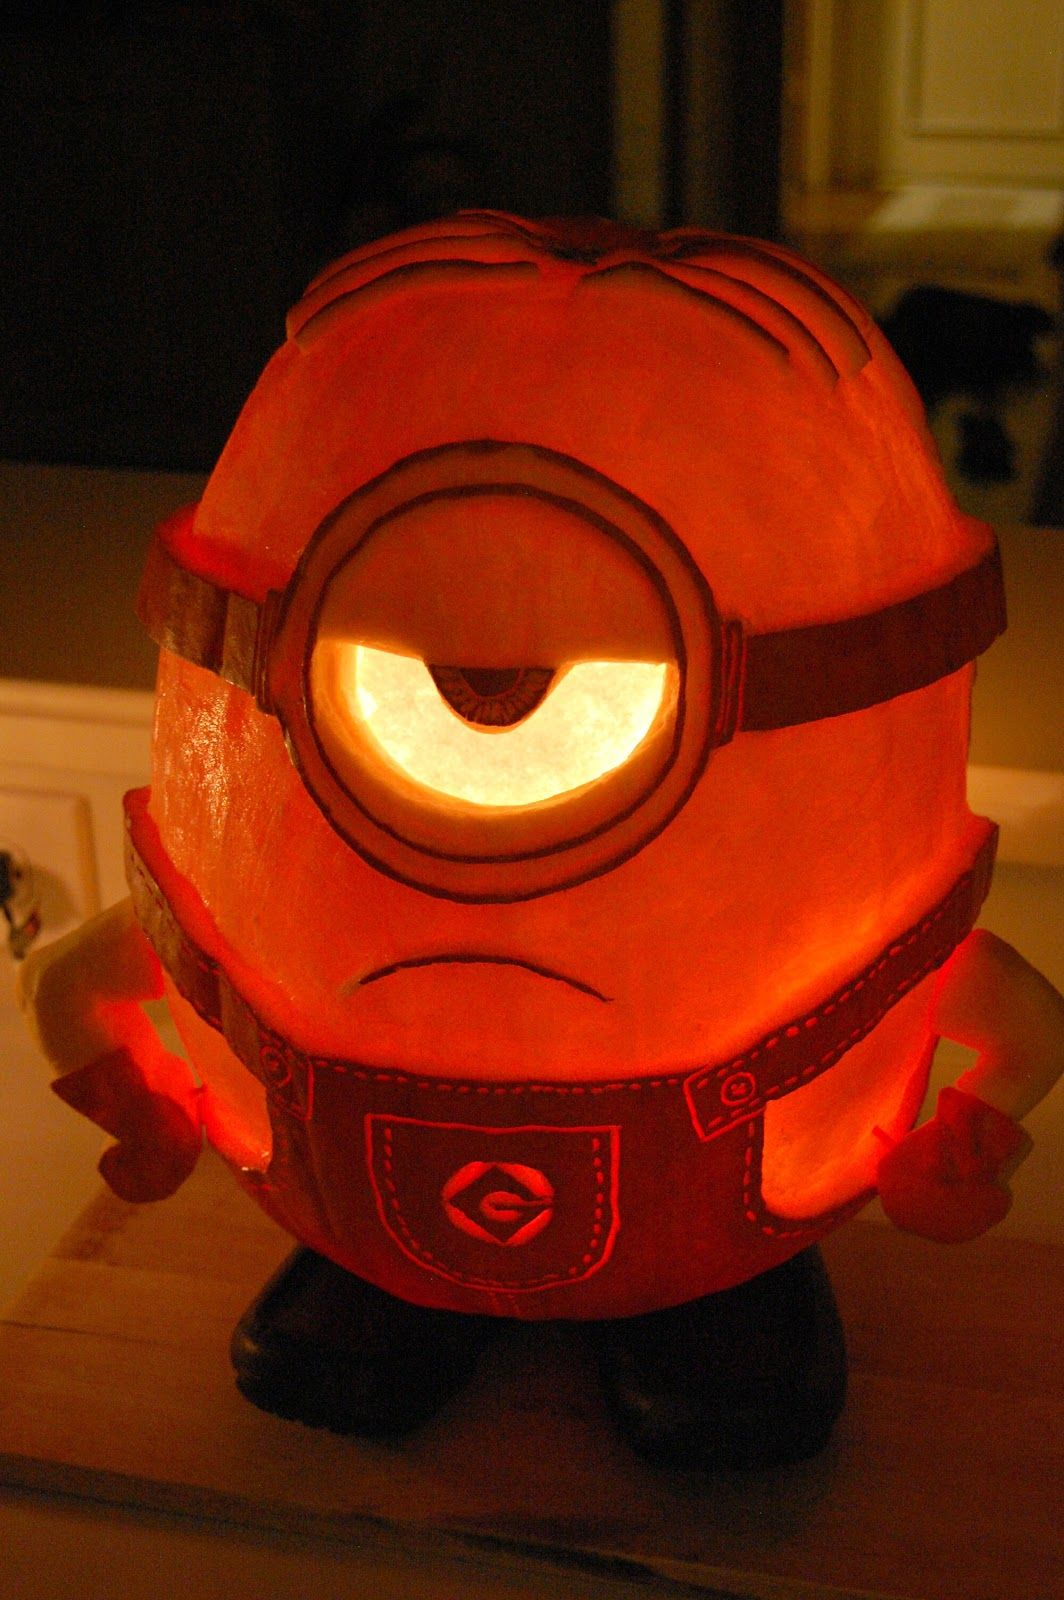 Pin by Krystina Burton on minion pumpkin project | Pinterest ...